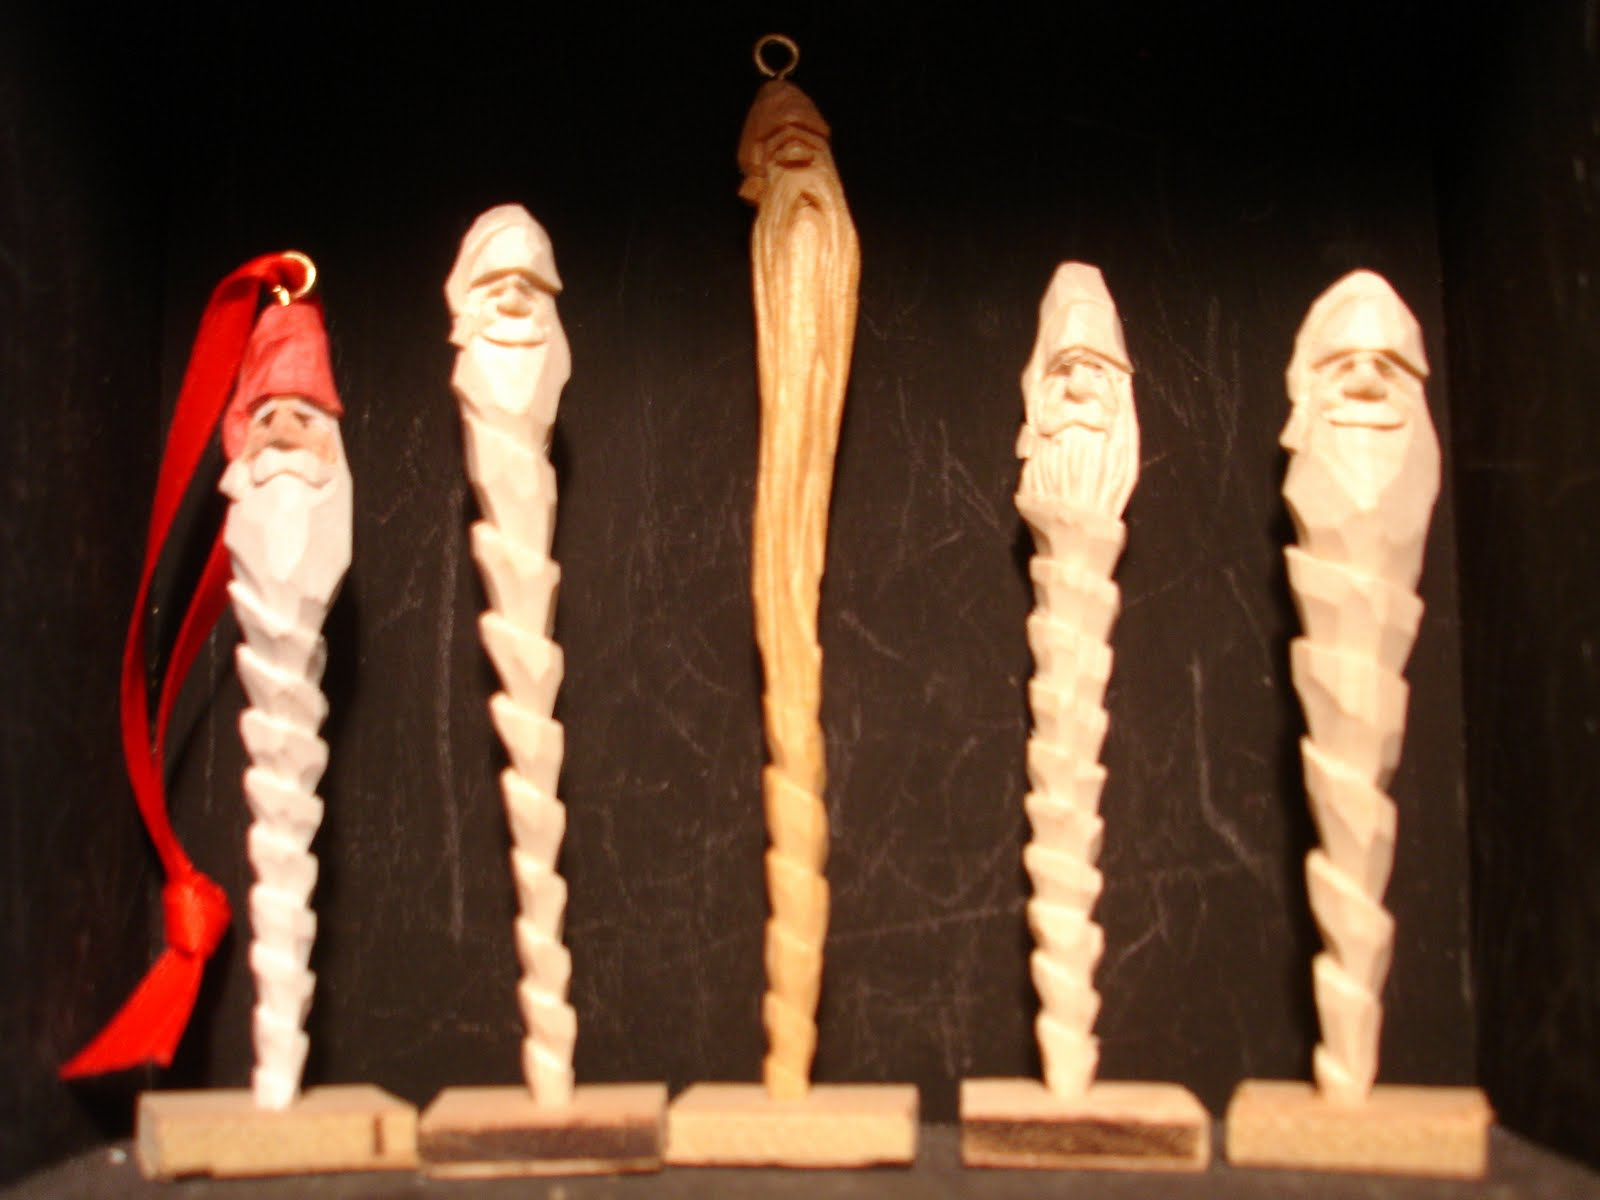 Easy Whittling Projects http://quiltingandcarving.blogspot.com/2010/12/simple-whittling-exercise.html